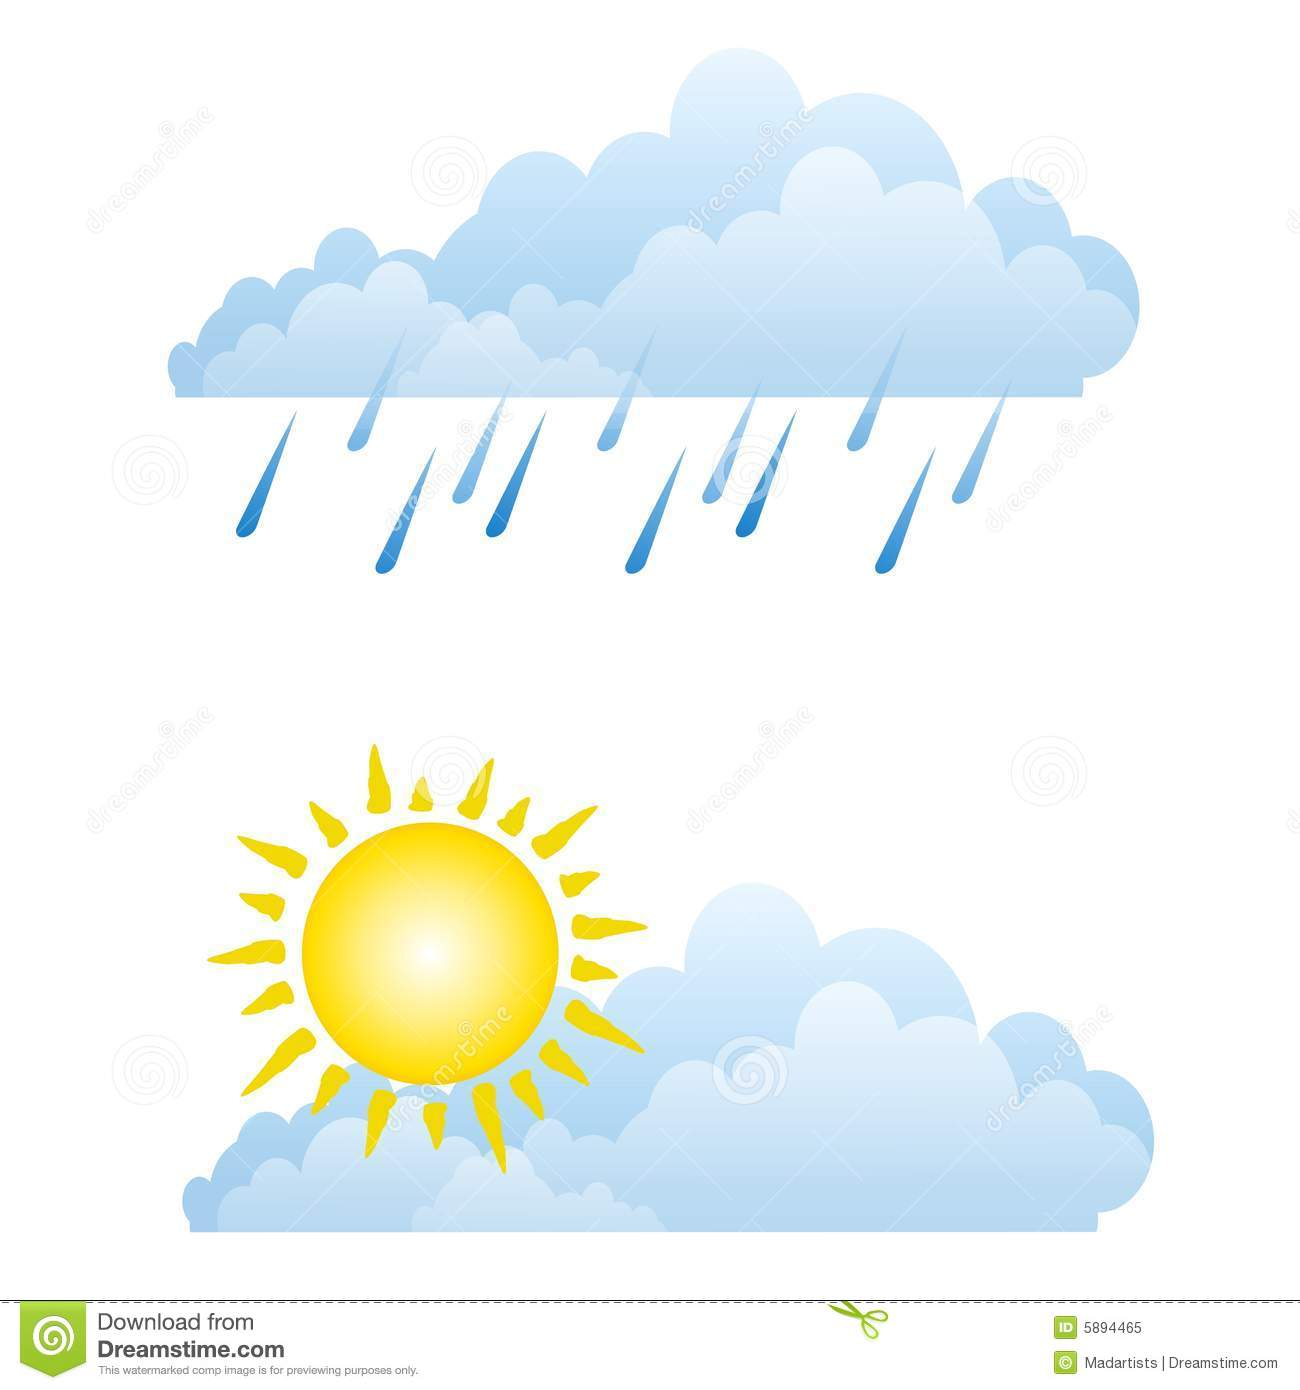 sunny rainy weather clouds stock illustration image of clip art rain clip art rainbow free